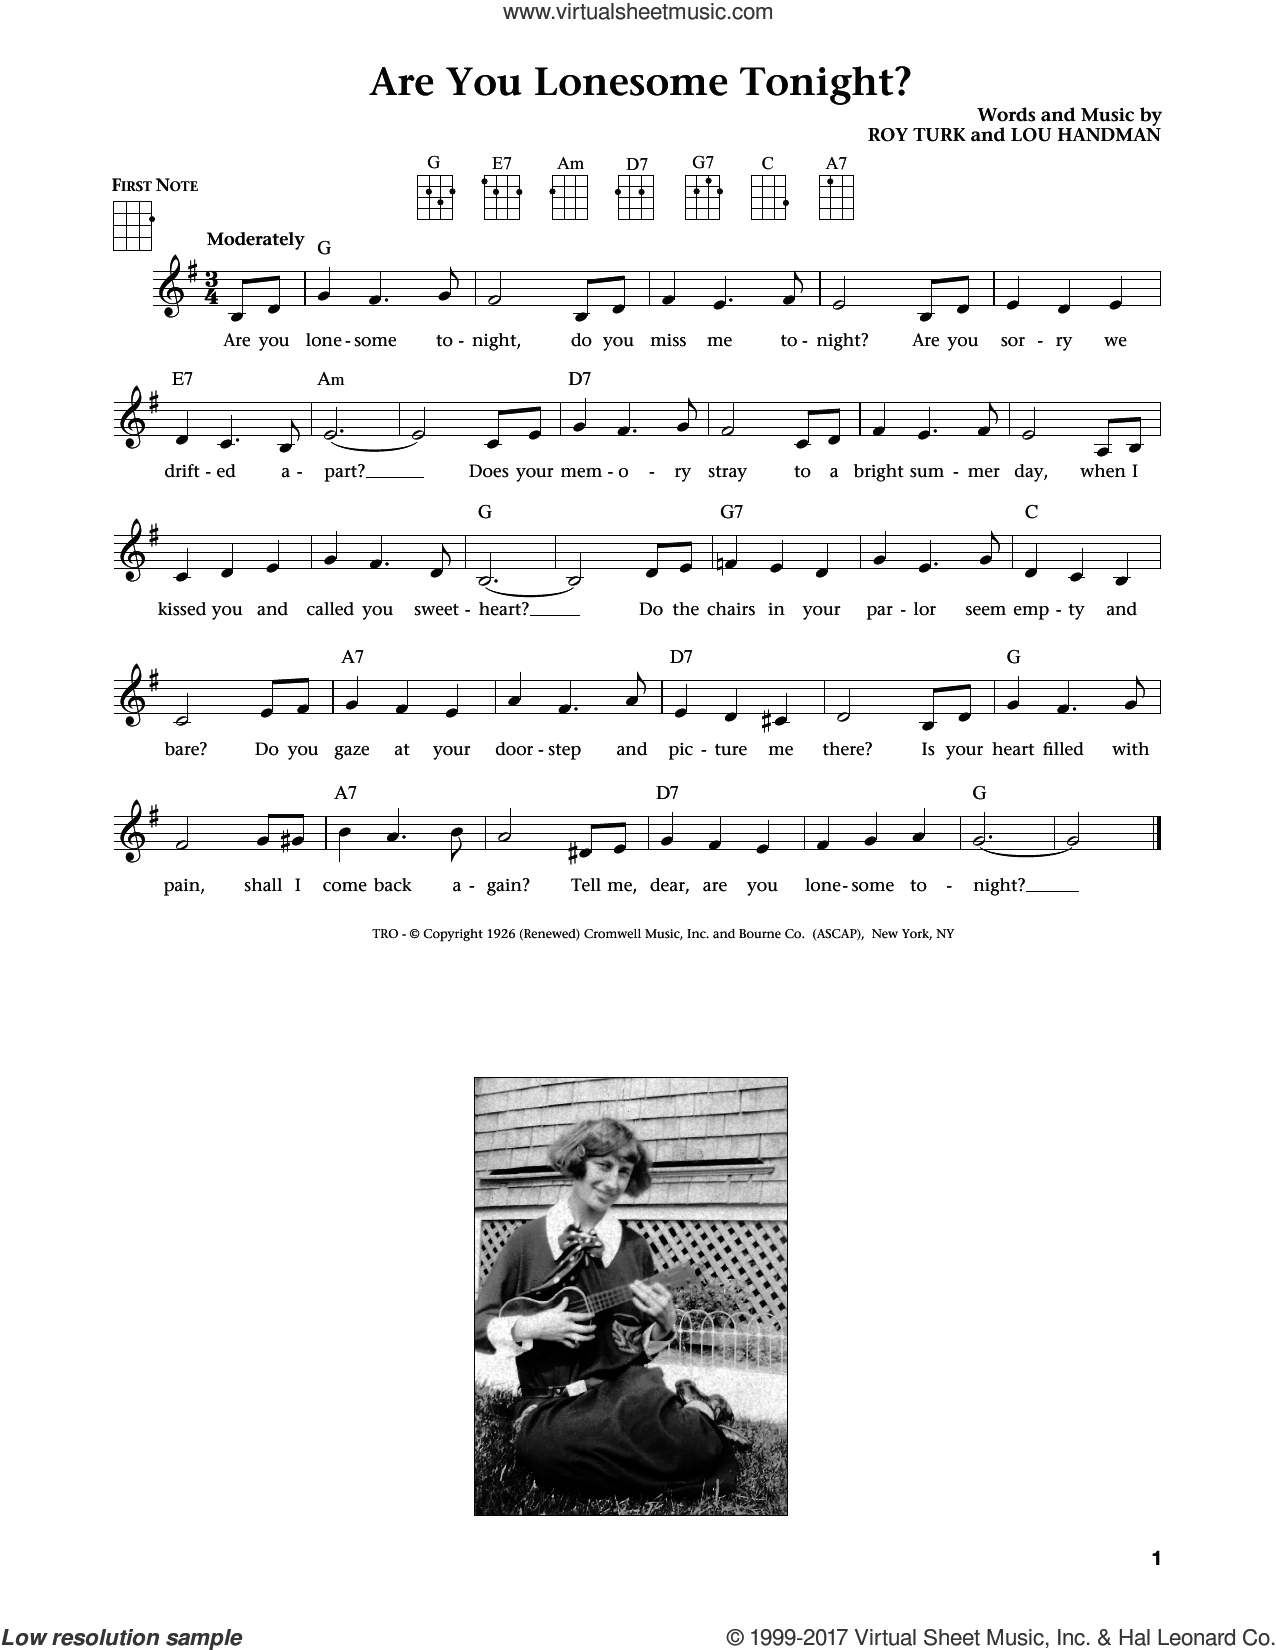 Jackson (from The Daily Ukulele) (arr. Liz and Jim Beloff) sheet music for ukulele by Johnny Cash & June Carter, Jim Beloff, Liz Beloff, Nancy Sinatra & Lee Hazelwood, Billy Edd Wheeler and Jerry Leiber, intermediate skill level